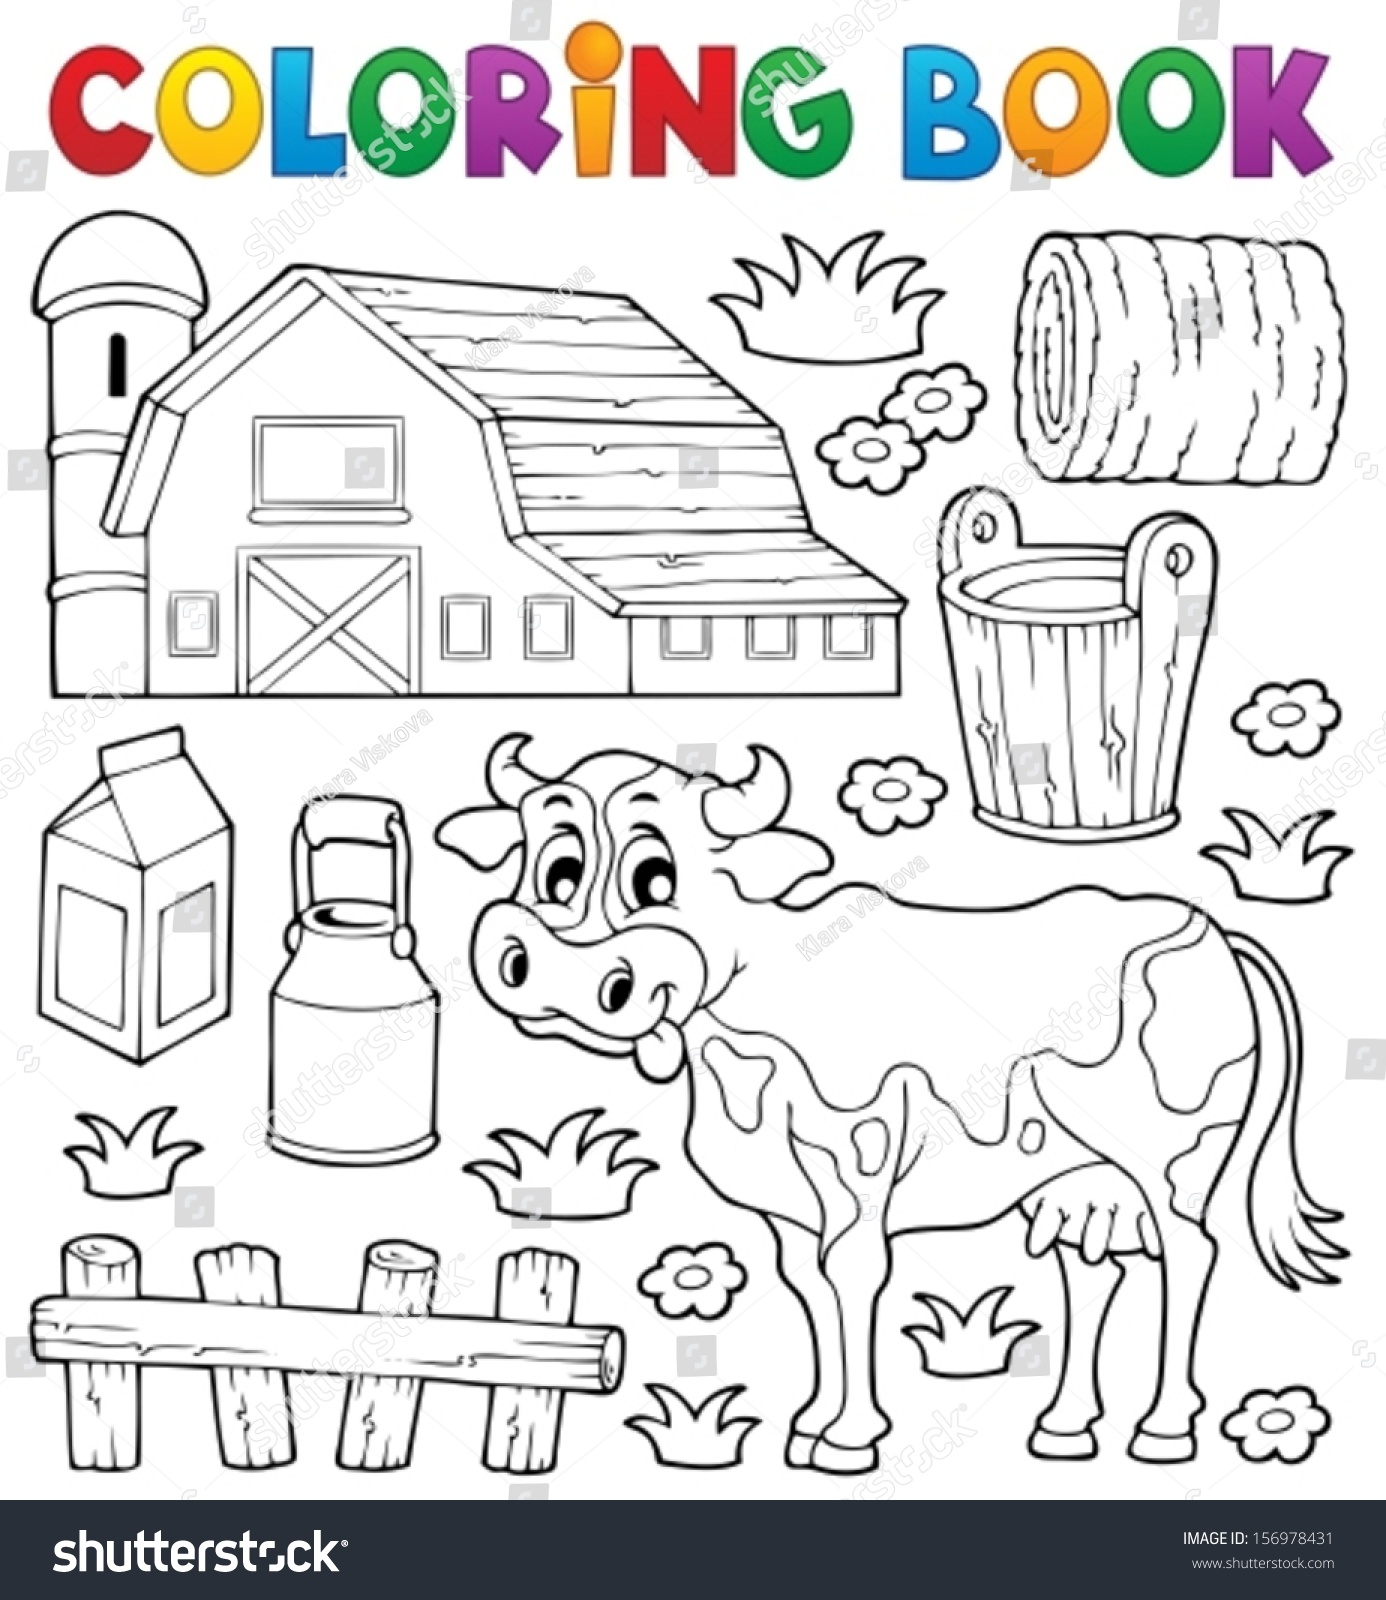 Excellent Anti Stress Coloring Book Thin Christian Coloring Books Solid Mystical Mandala Coloring Book Lord Of The Rings Coloring Book Old Abstract Coloring Books WhiteColoring Book Publishers Coloring Book Cow Theme 1 Eps10 Stock Vector 156978431   Shutterstock